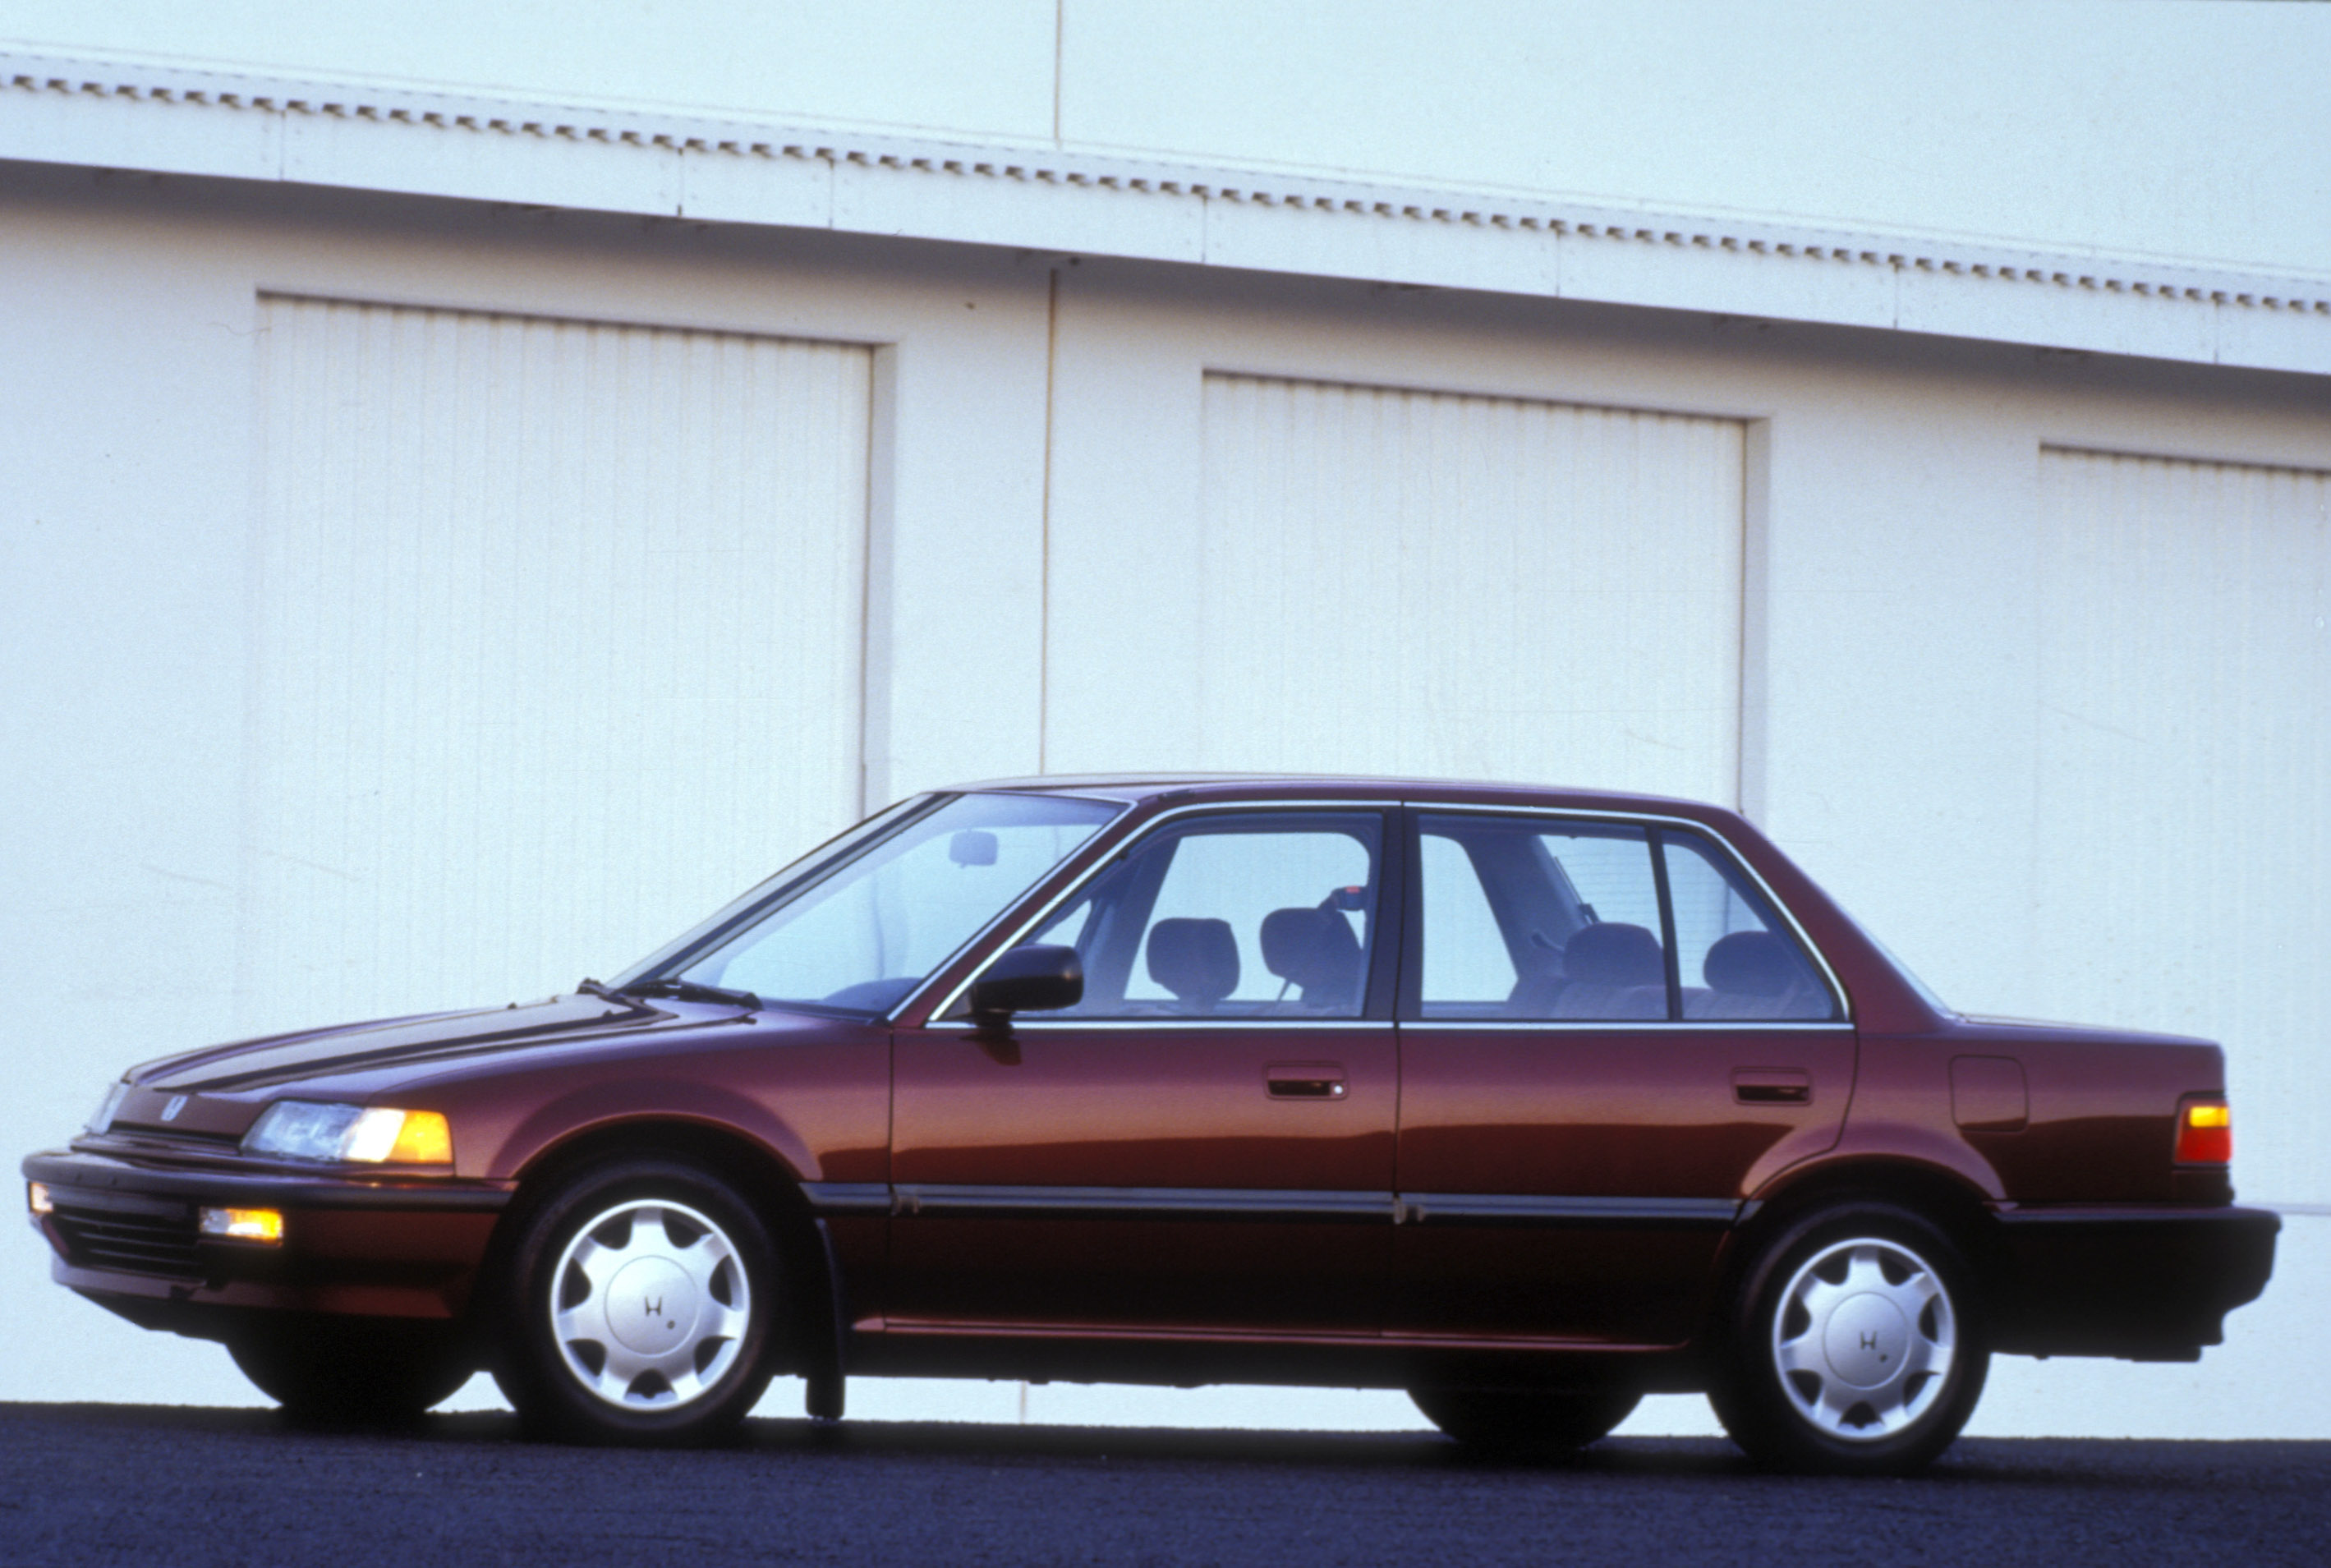 1991 Honda Civic EX sedan profile